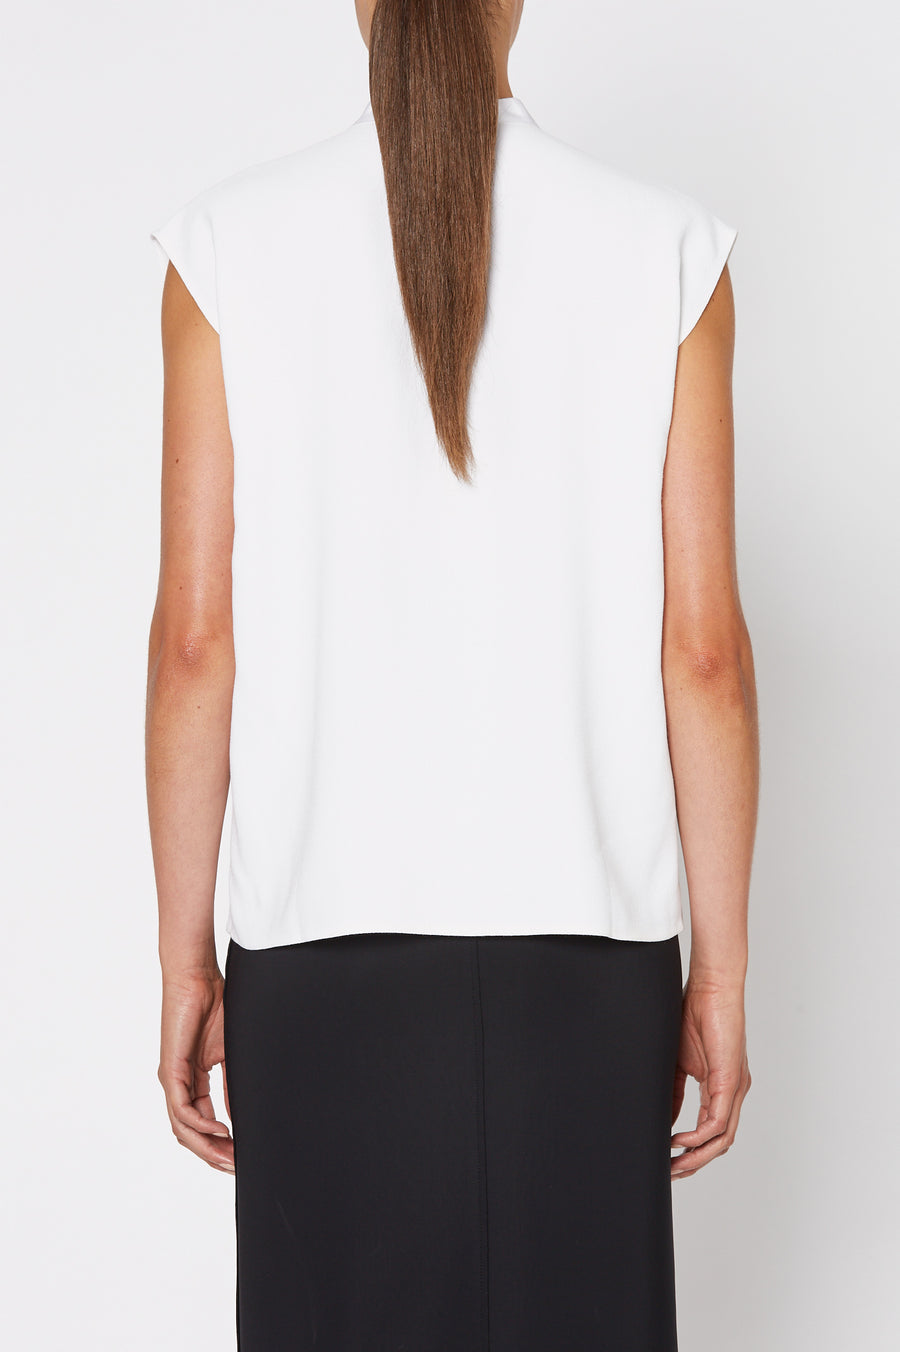 Crepe Tie Neck Tank is made from an Italian plant based fabric, tie neck, short sleeve, color white